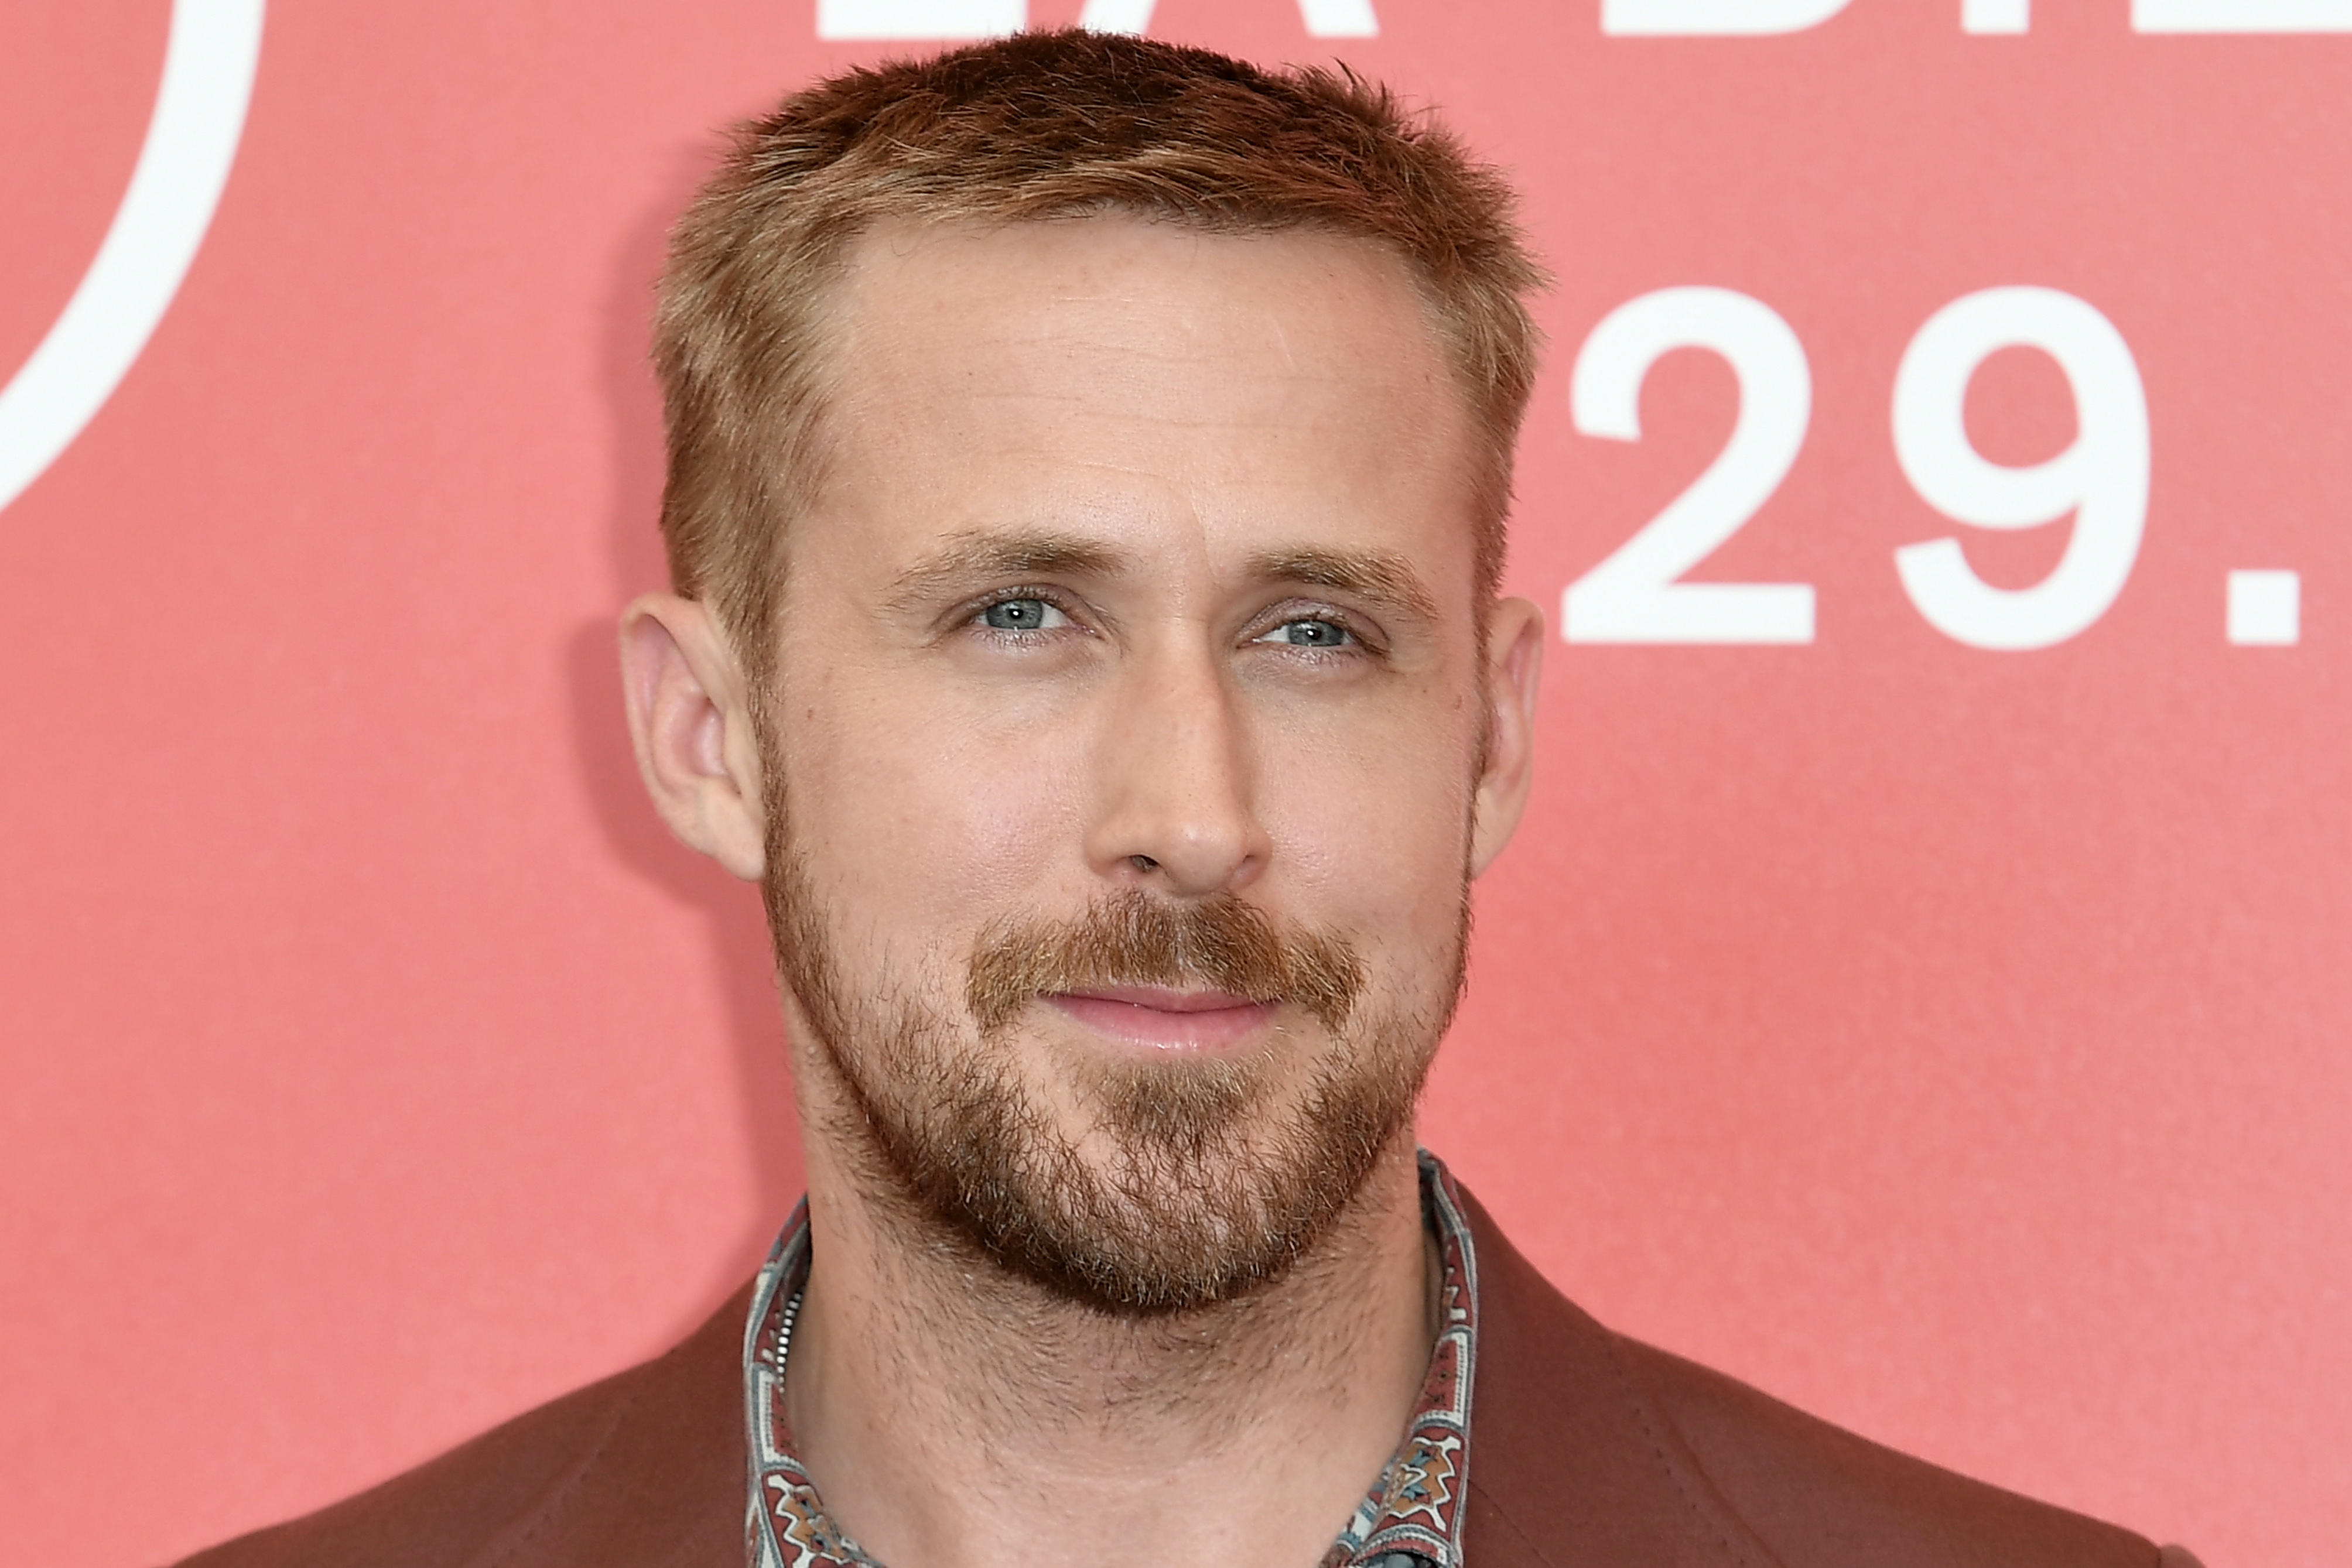 Ryan Gosling Goes All Out To Support Co-Star's Charity Efforts recommend